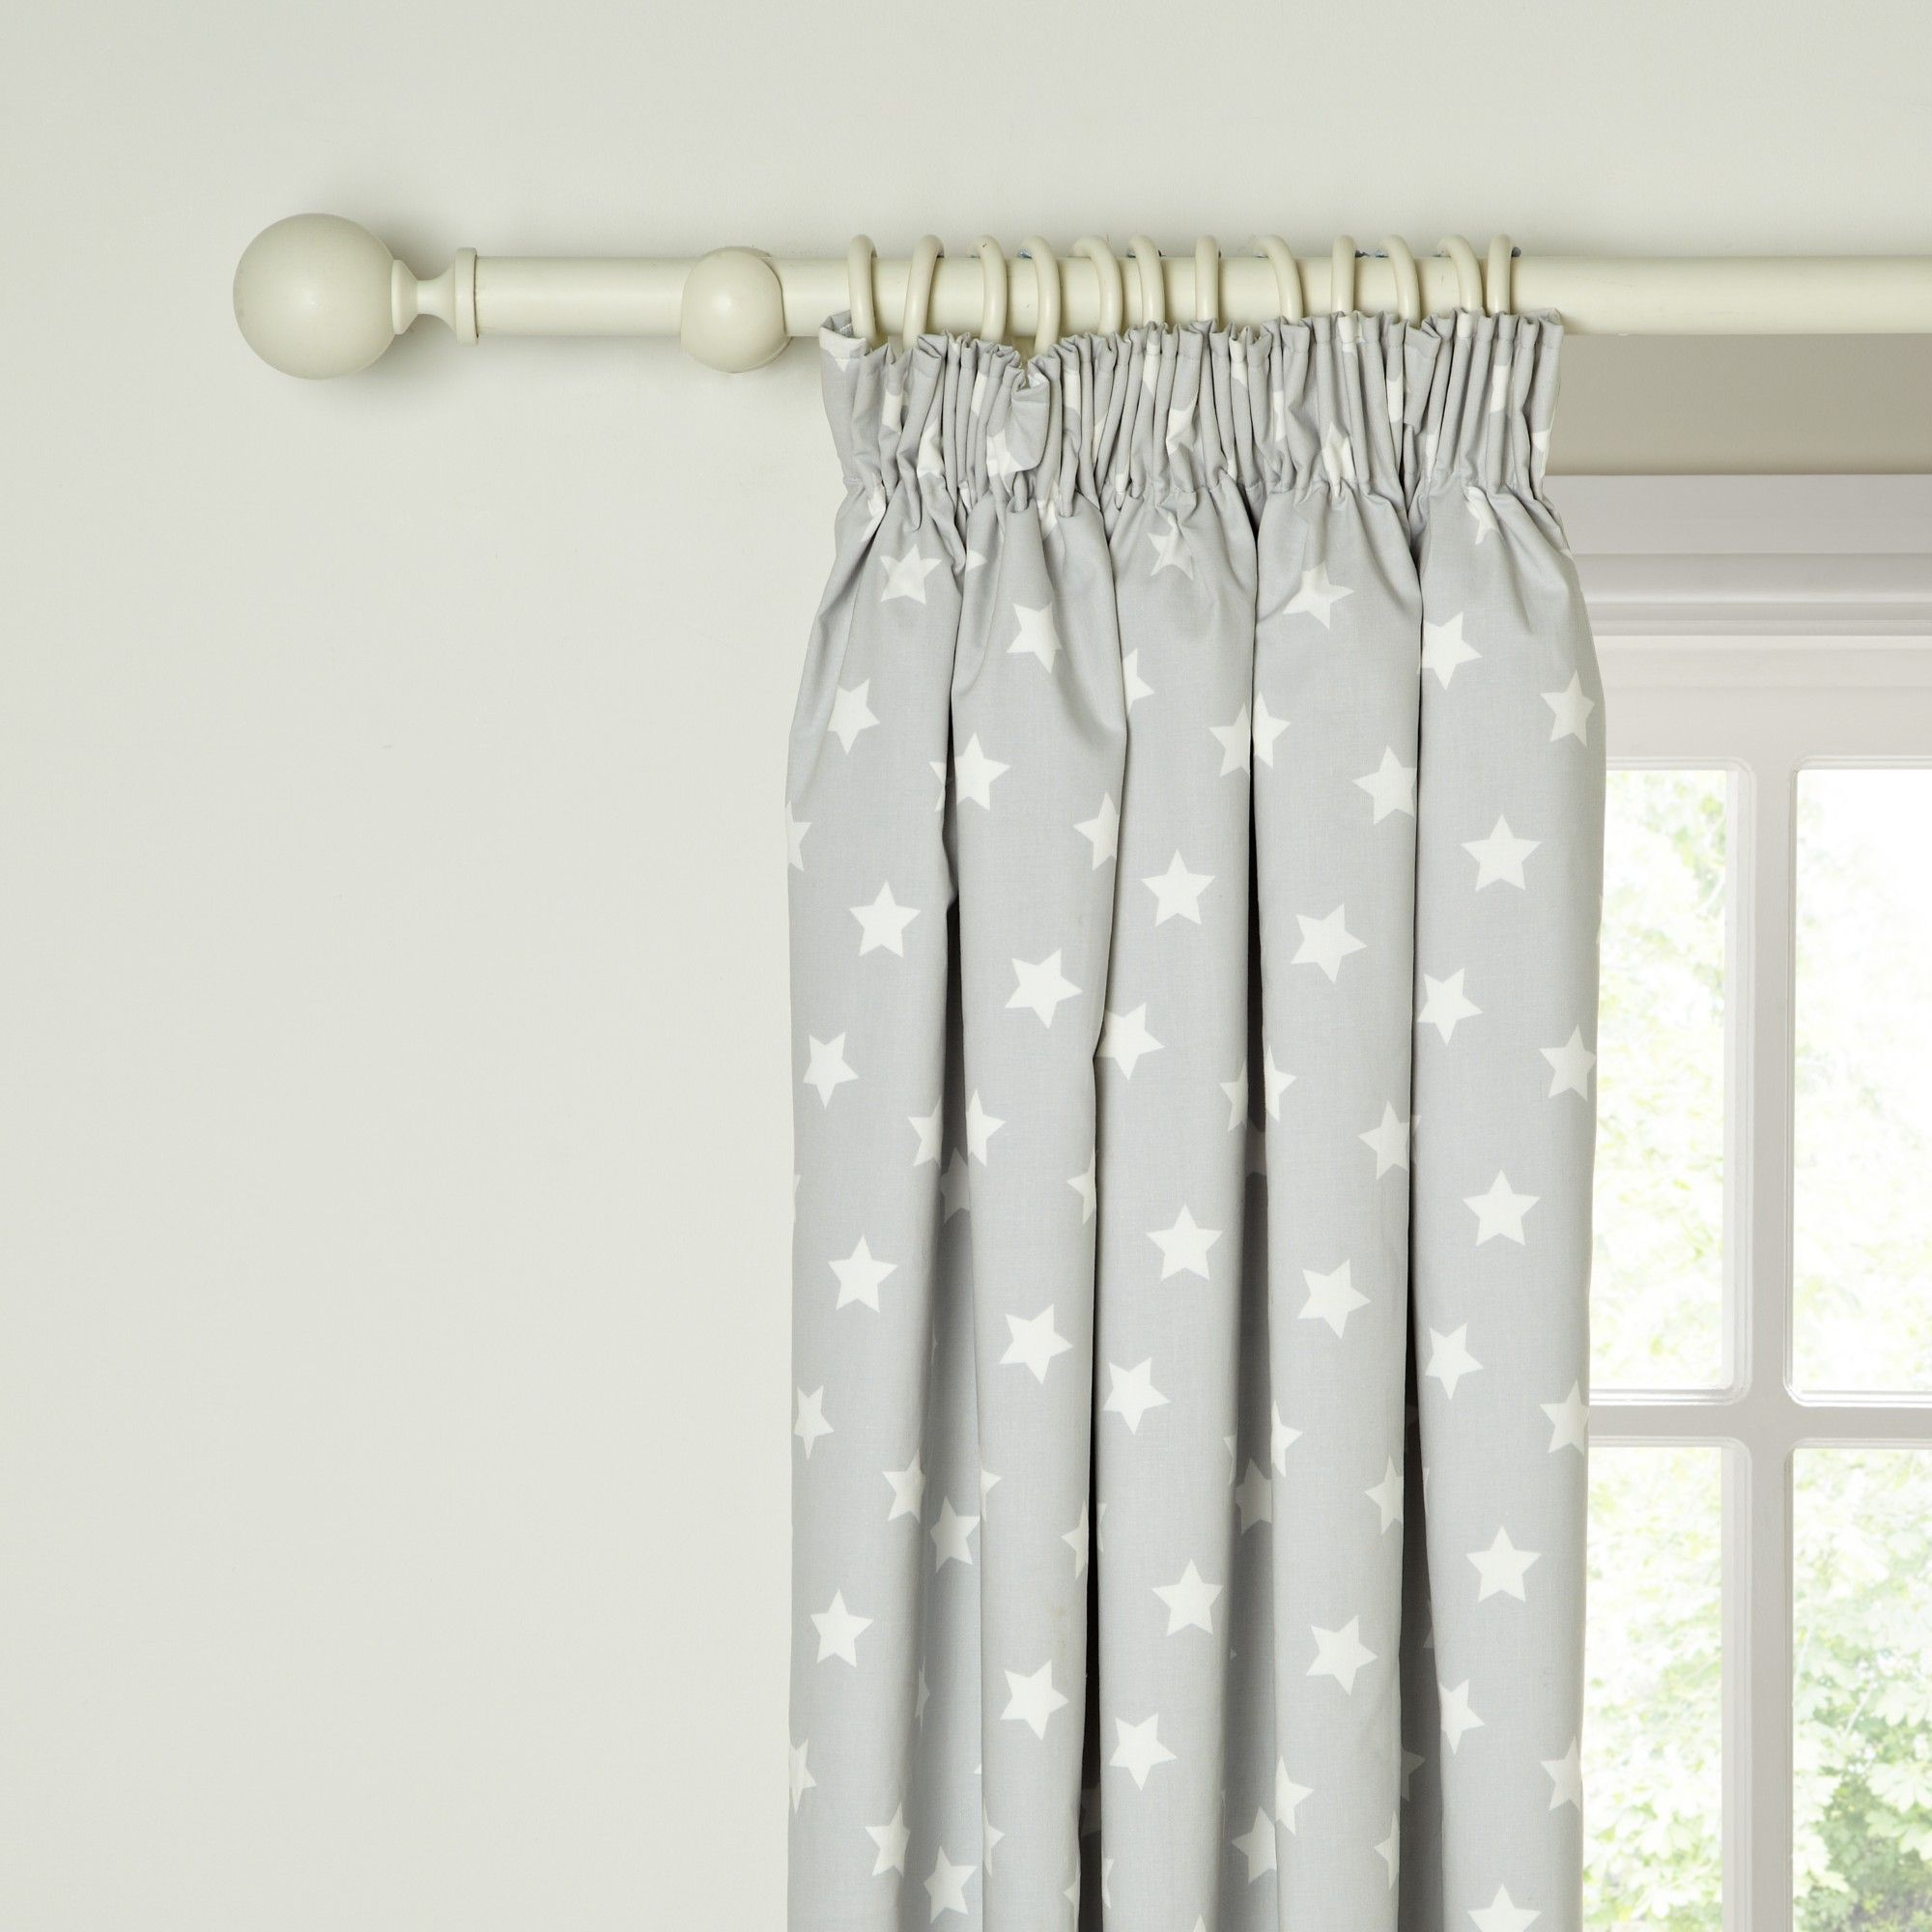 Little home at john lewis star pencil pleat pair blackout lined